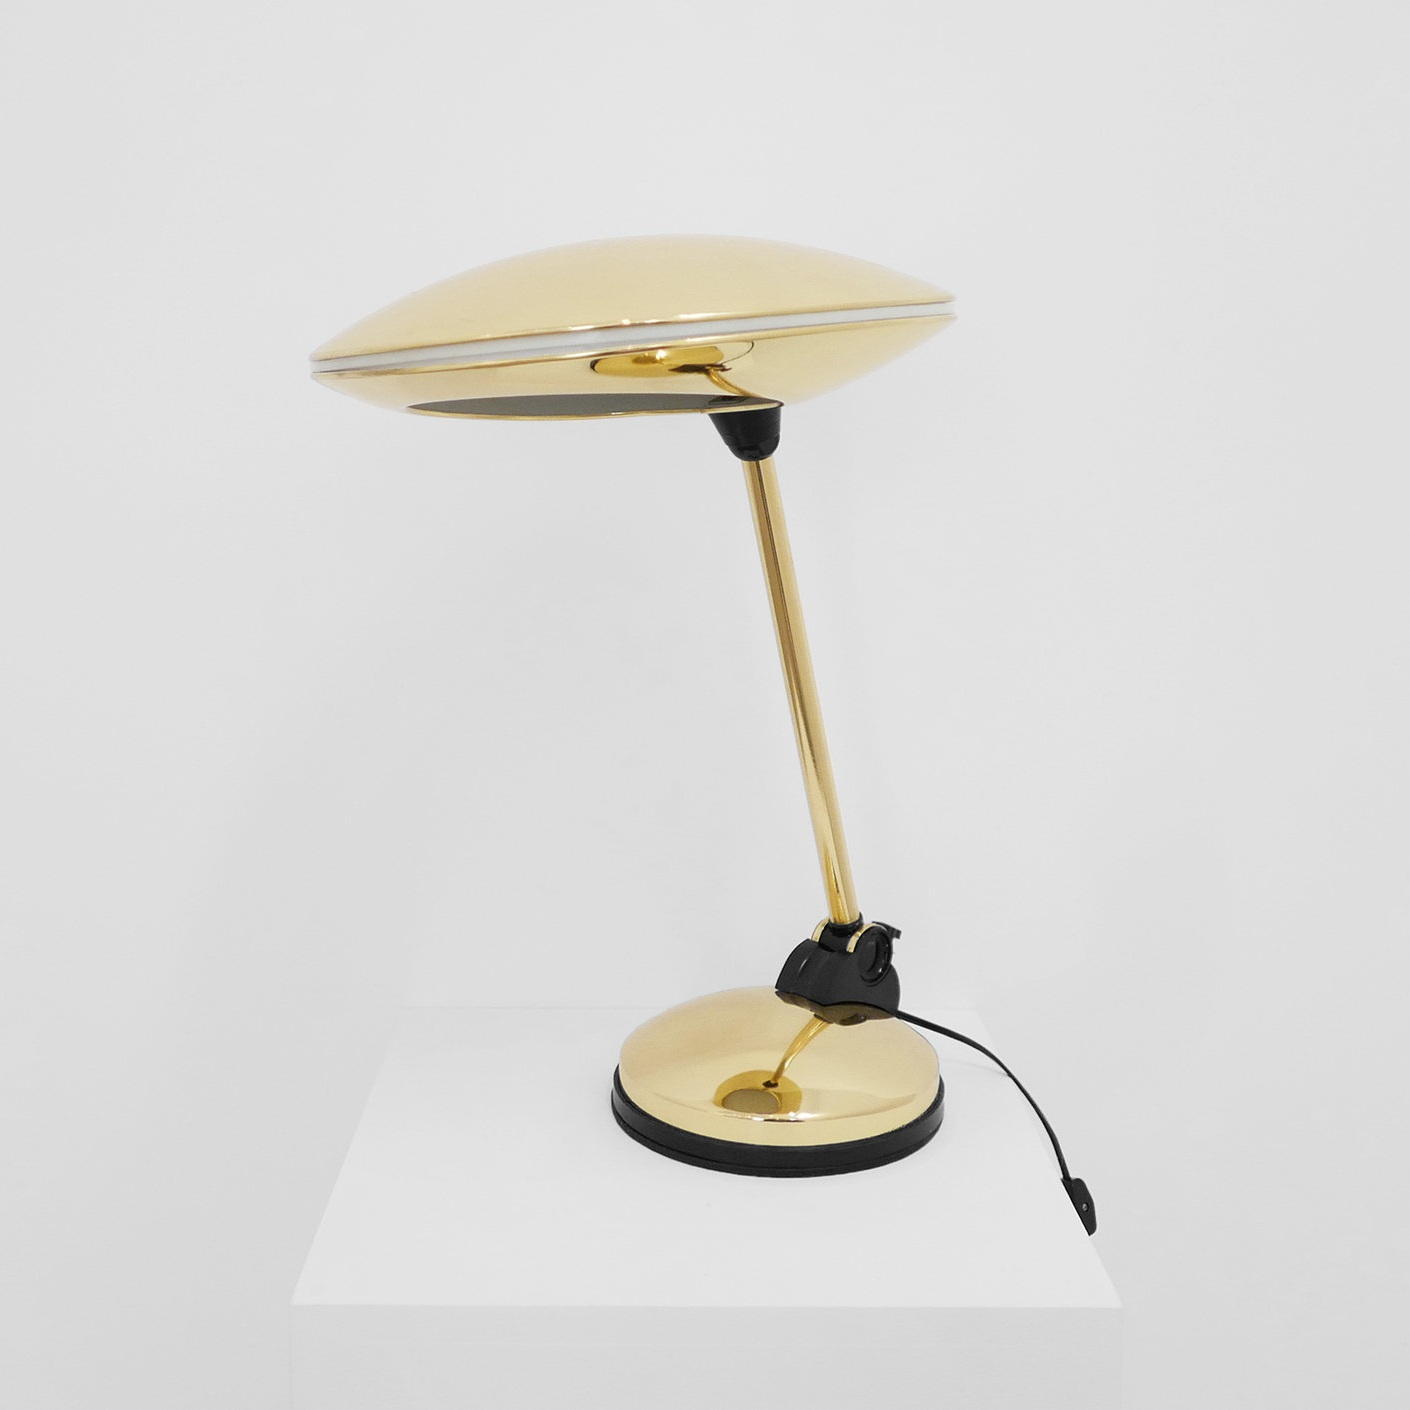 italian table lamp $2,500